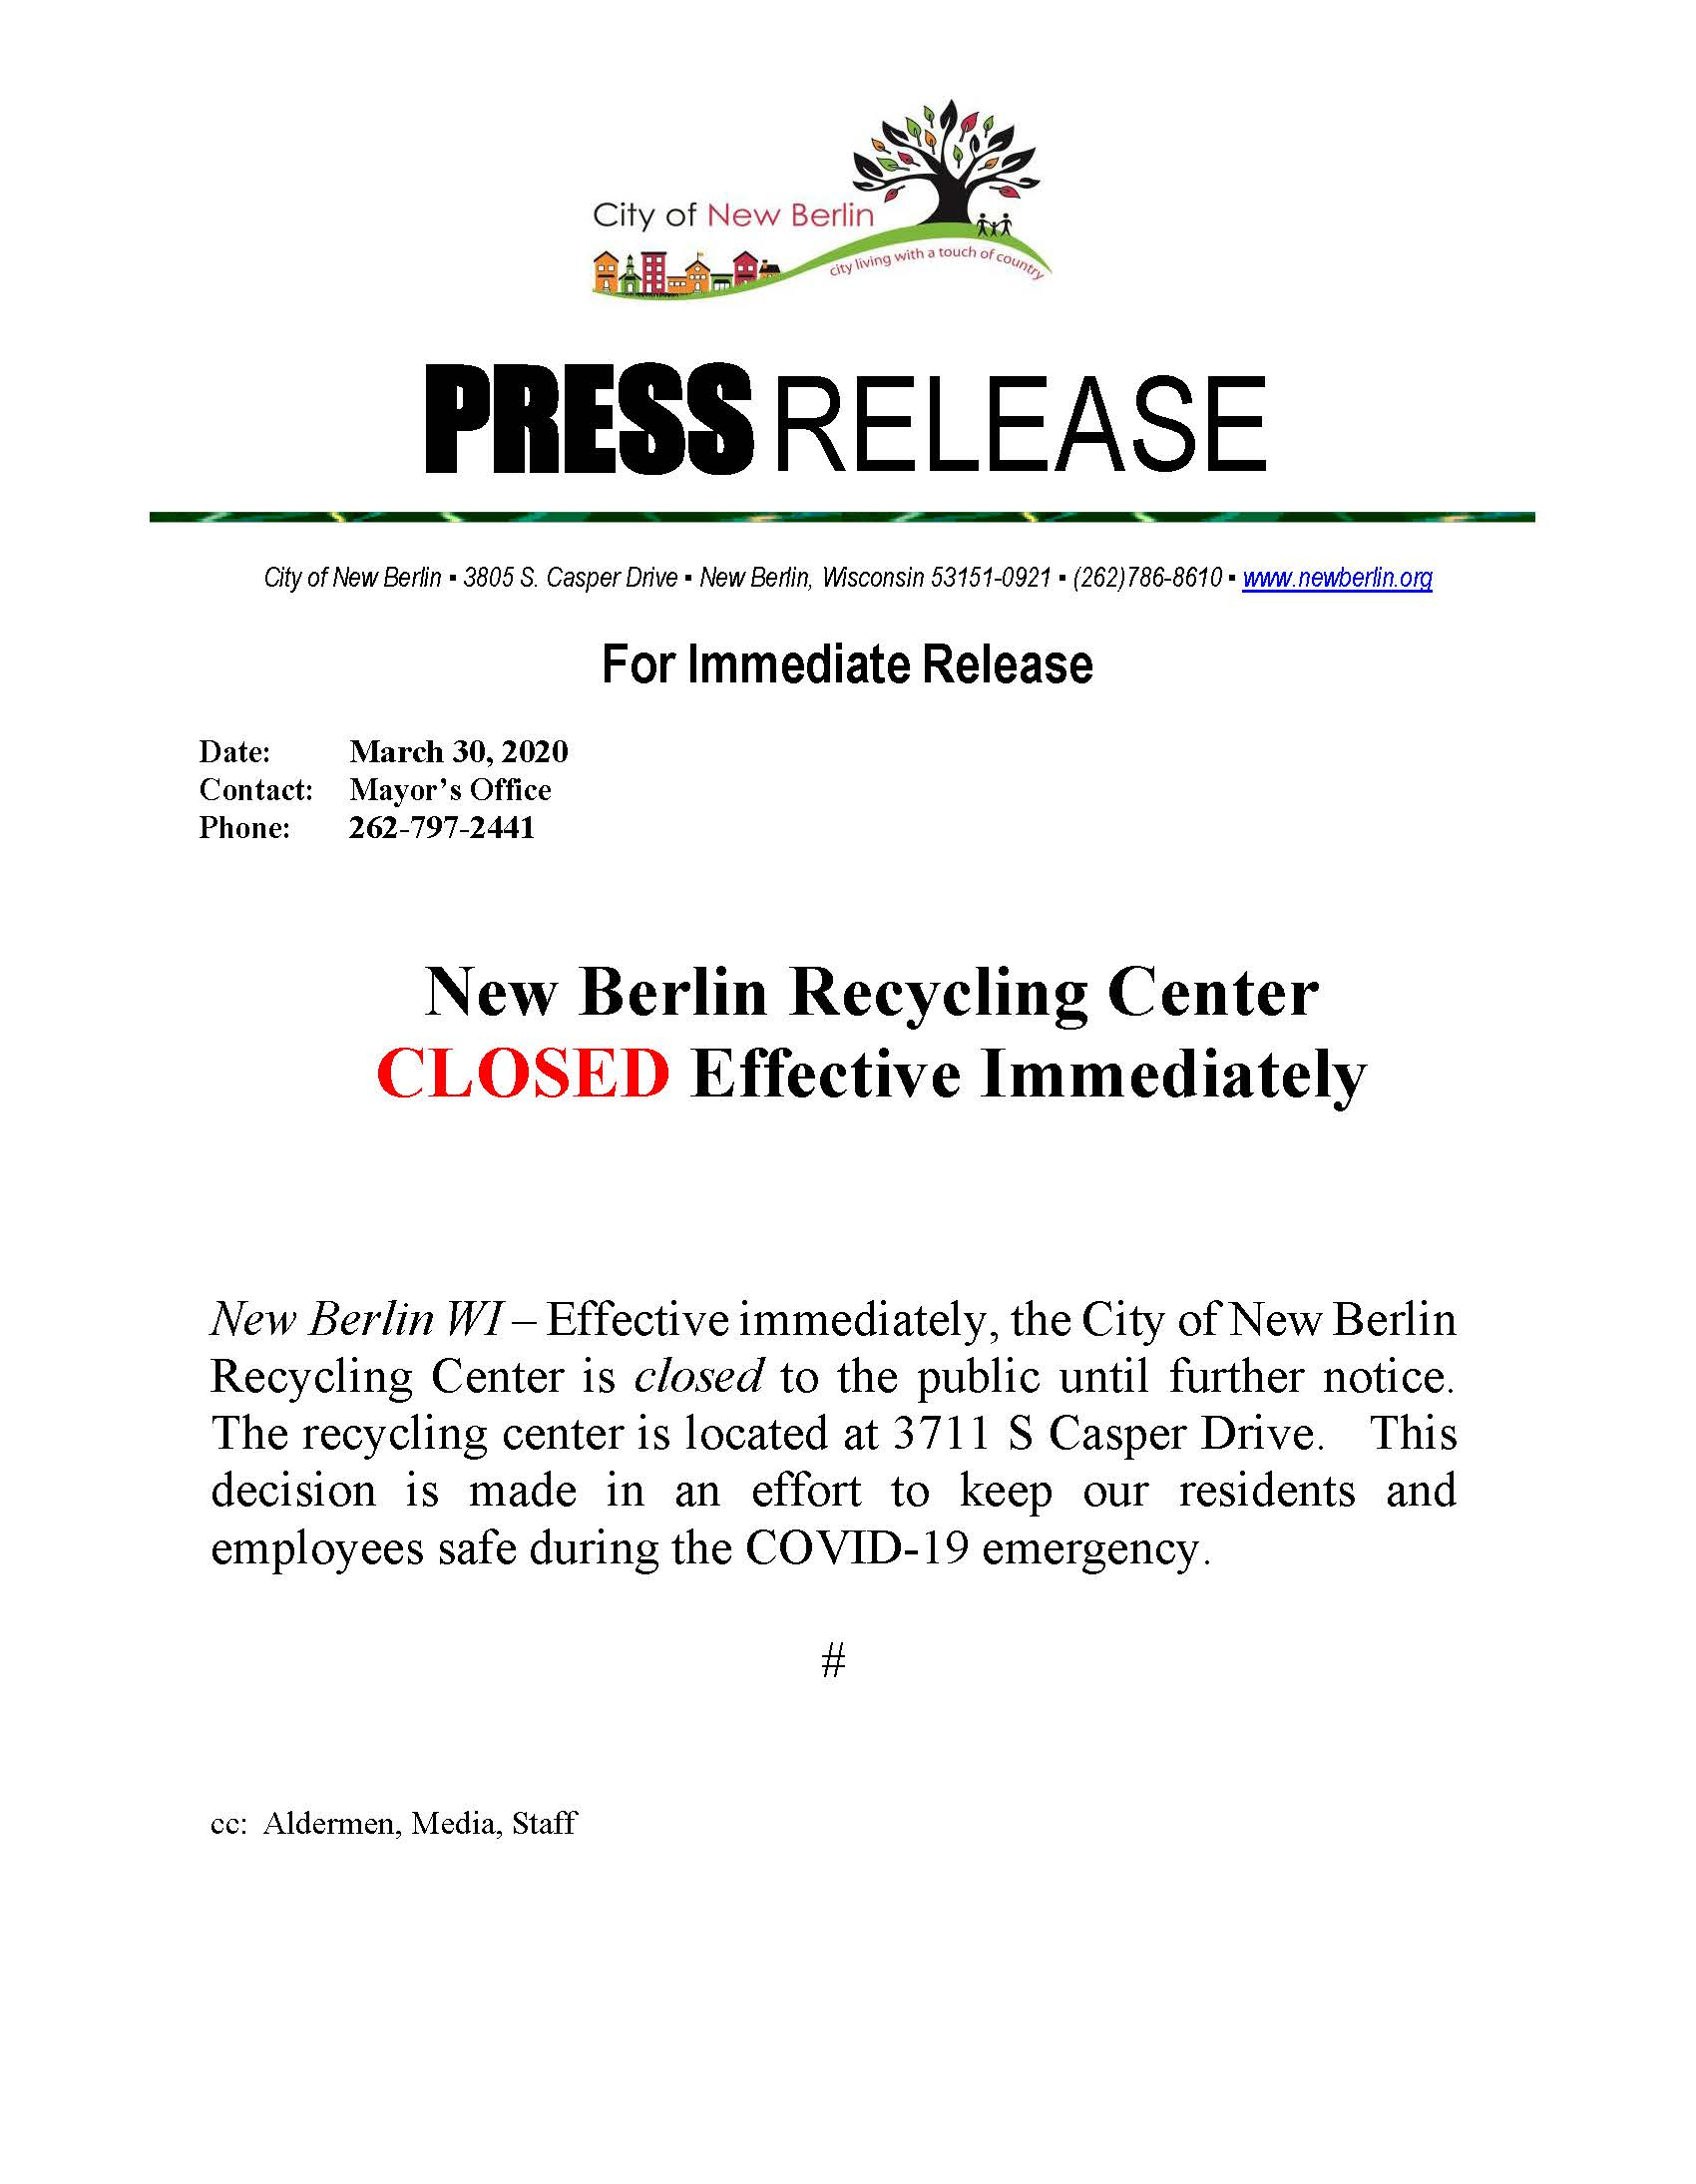 Press Release - Recycling Center CLOSED